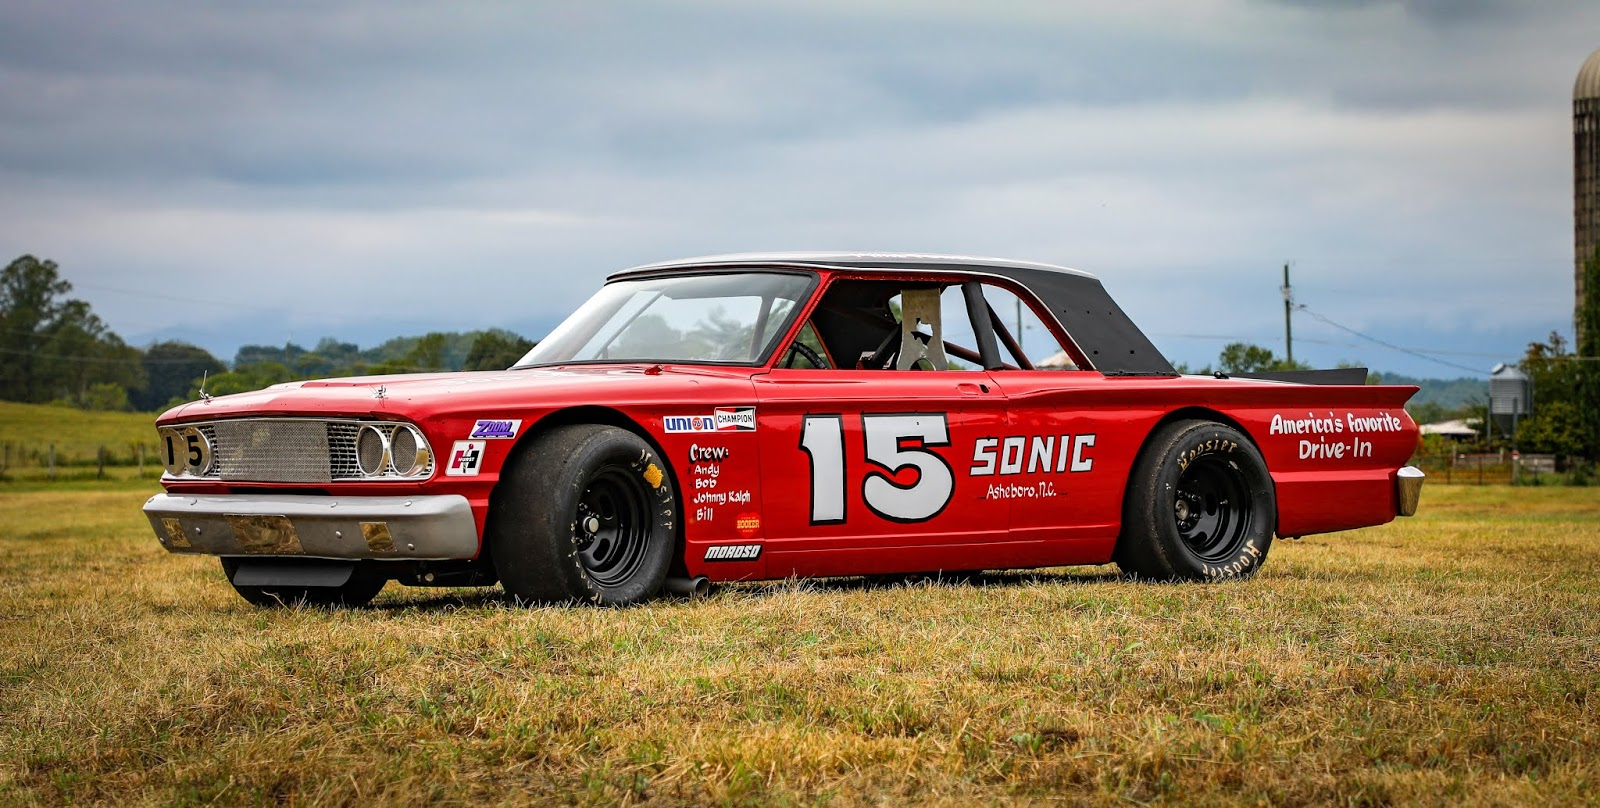 Mike Powell Brings NASCAR history to Groesbeck Grand Prix